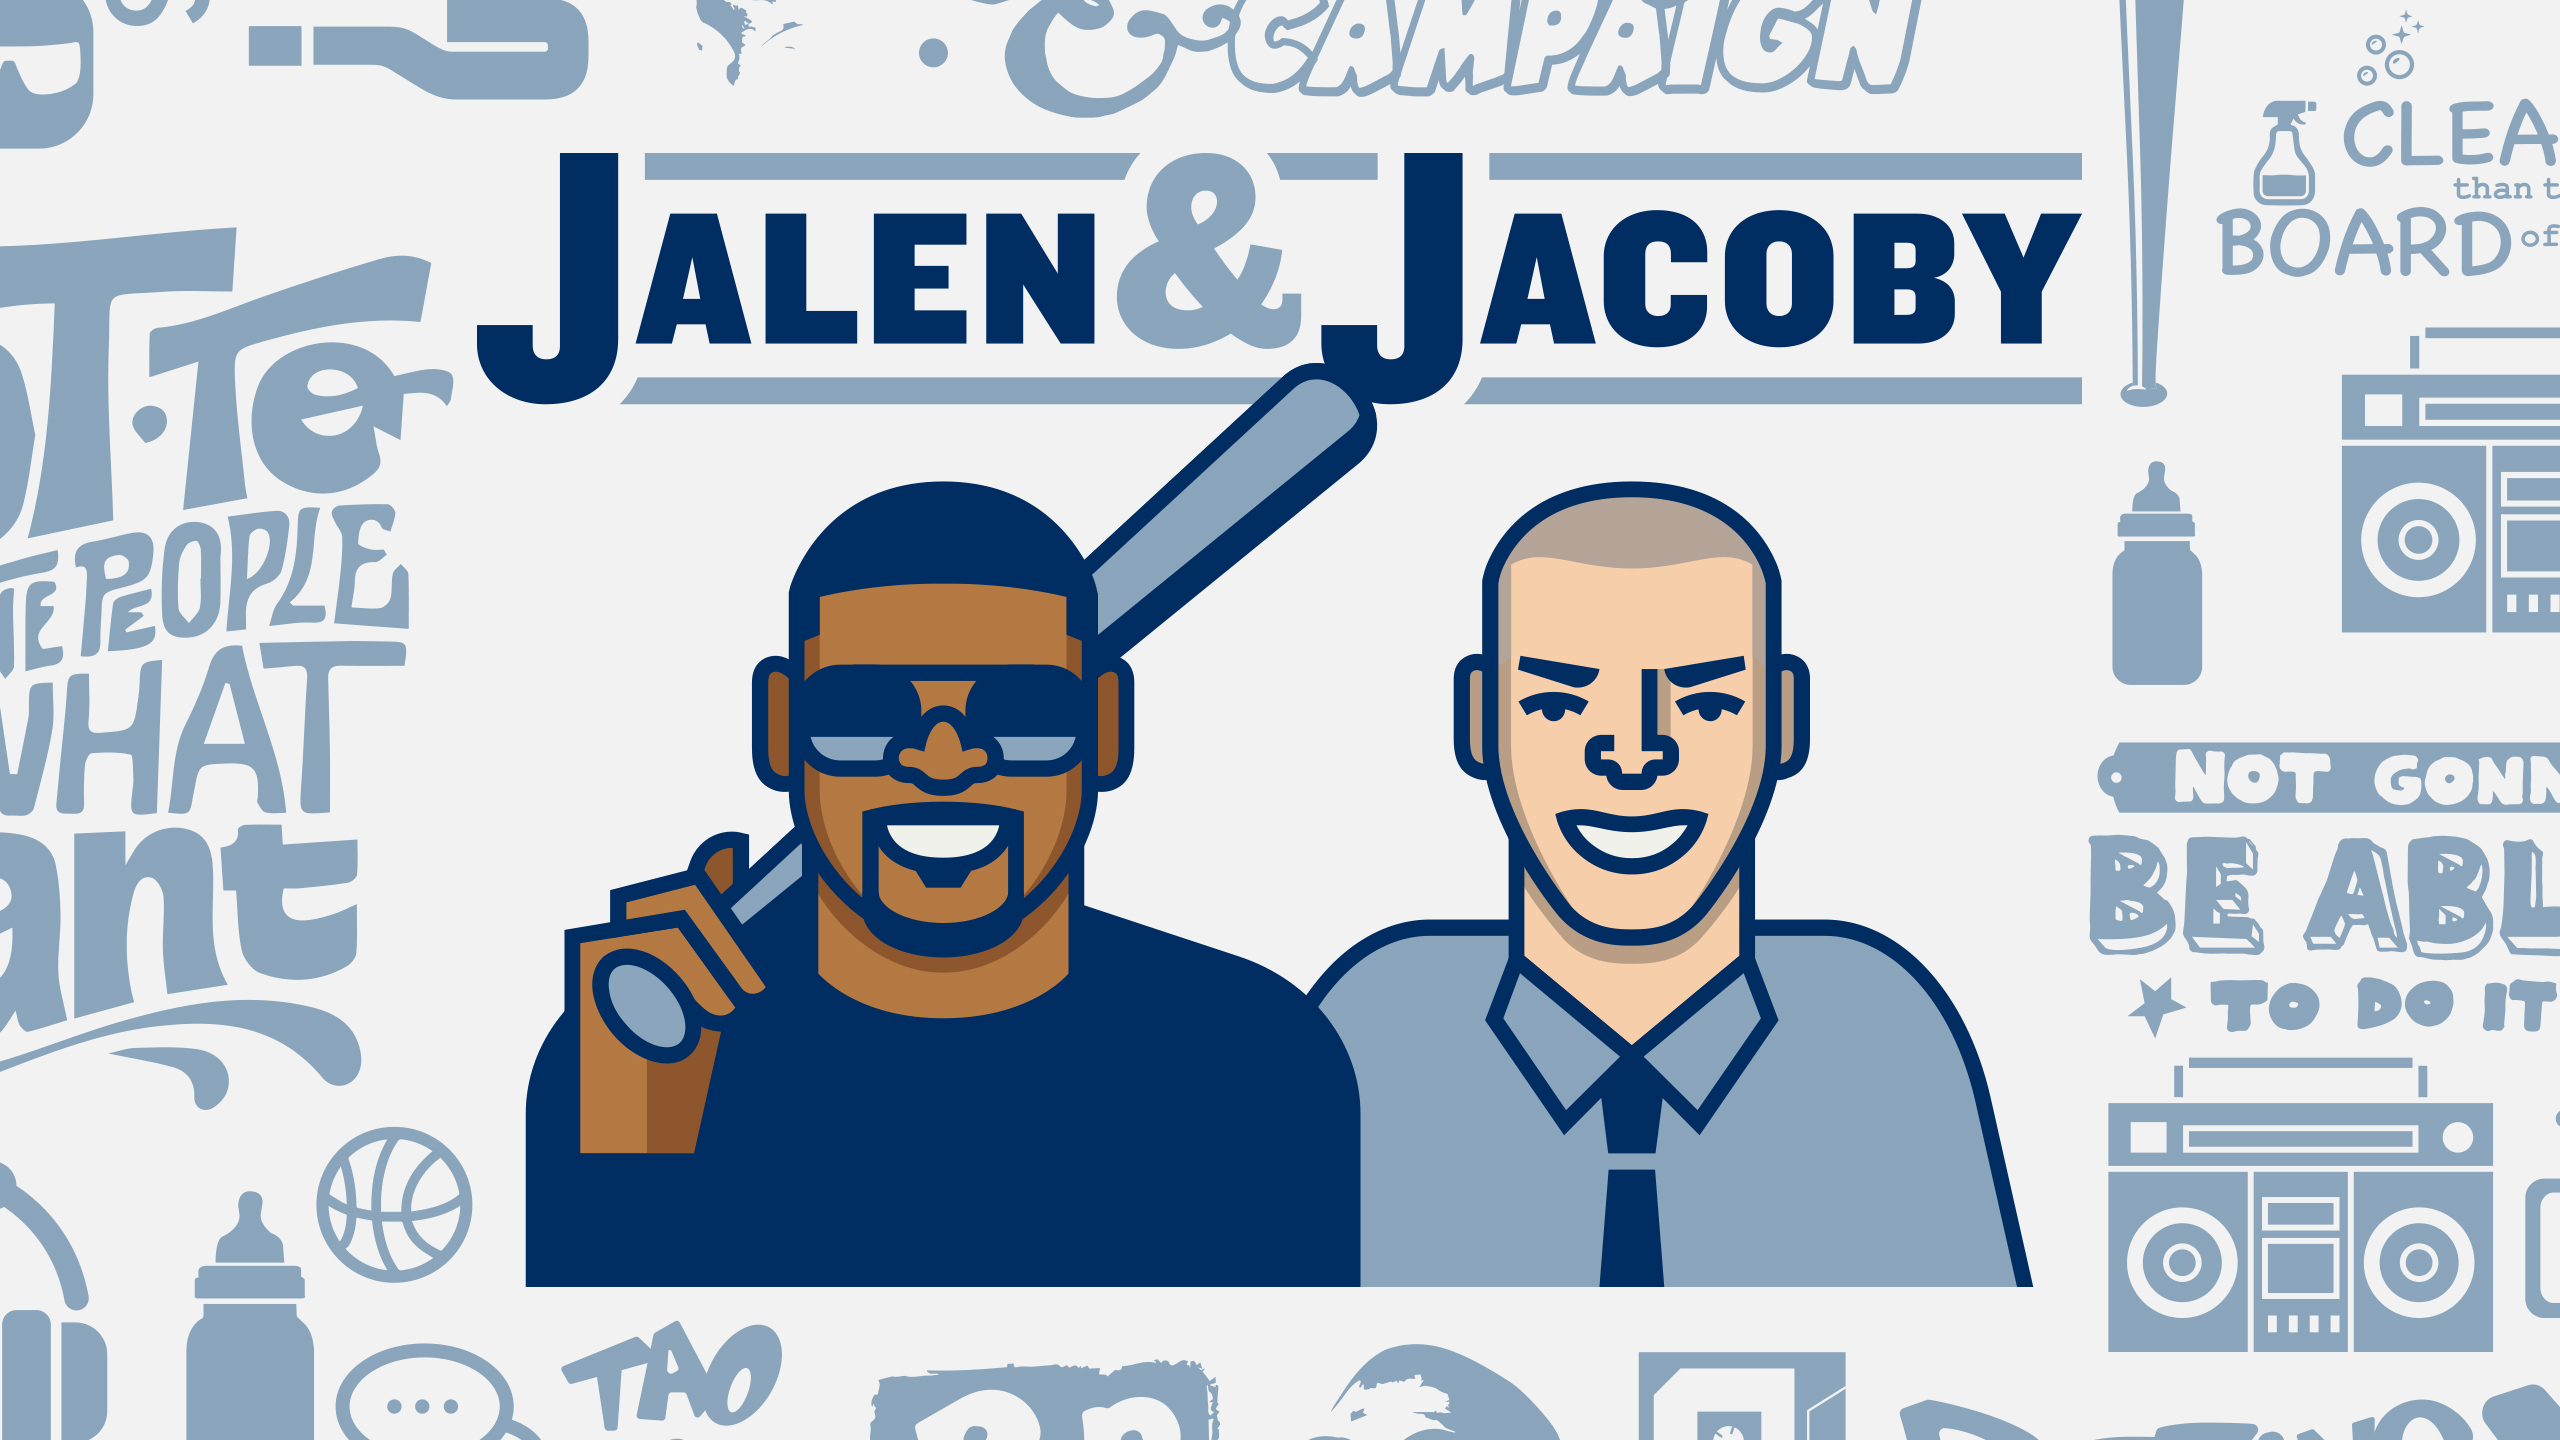 Fri, 4/19 - Jalen & Jacoby